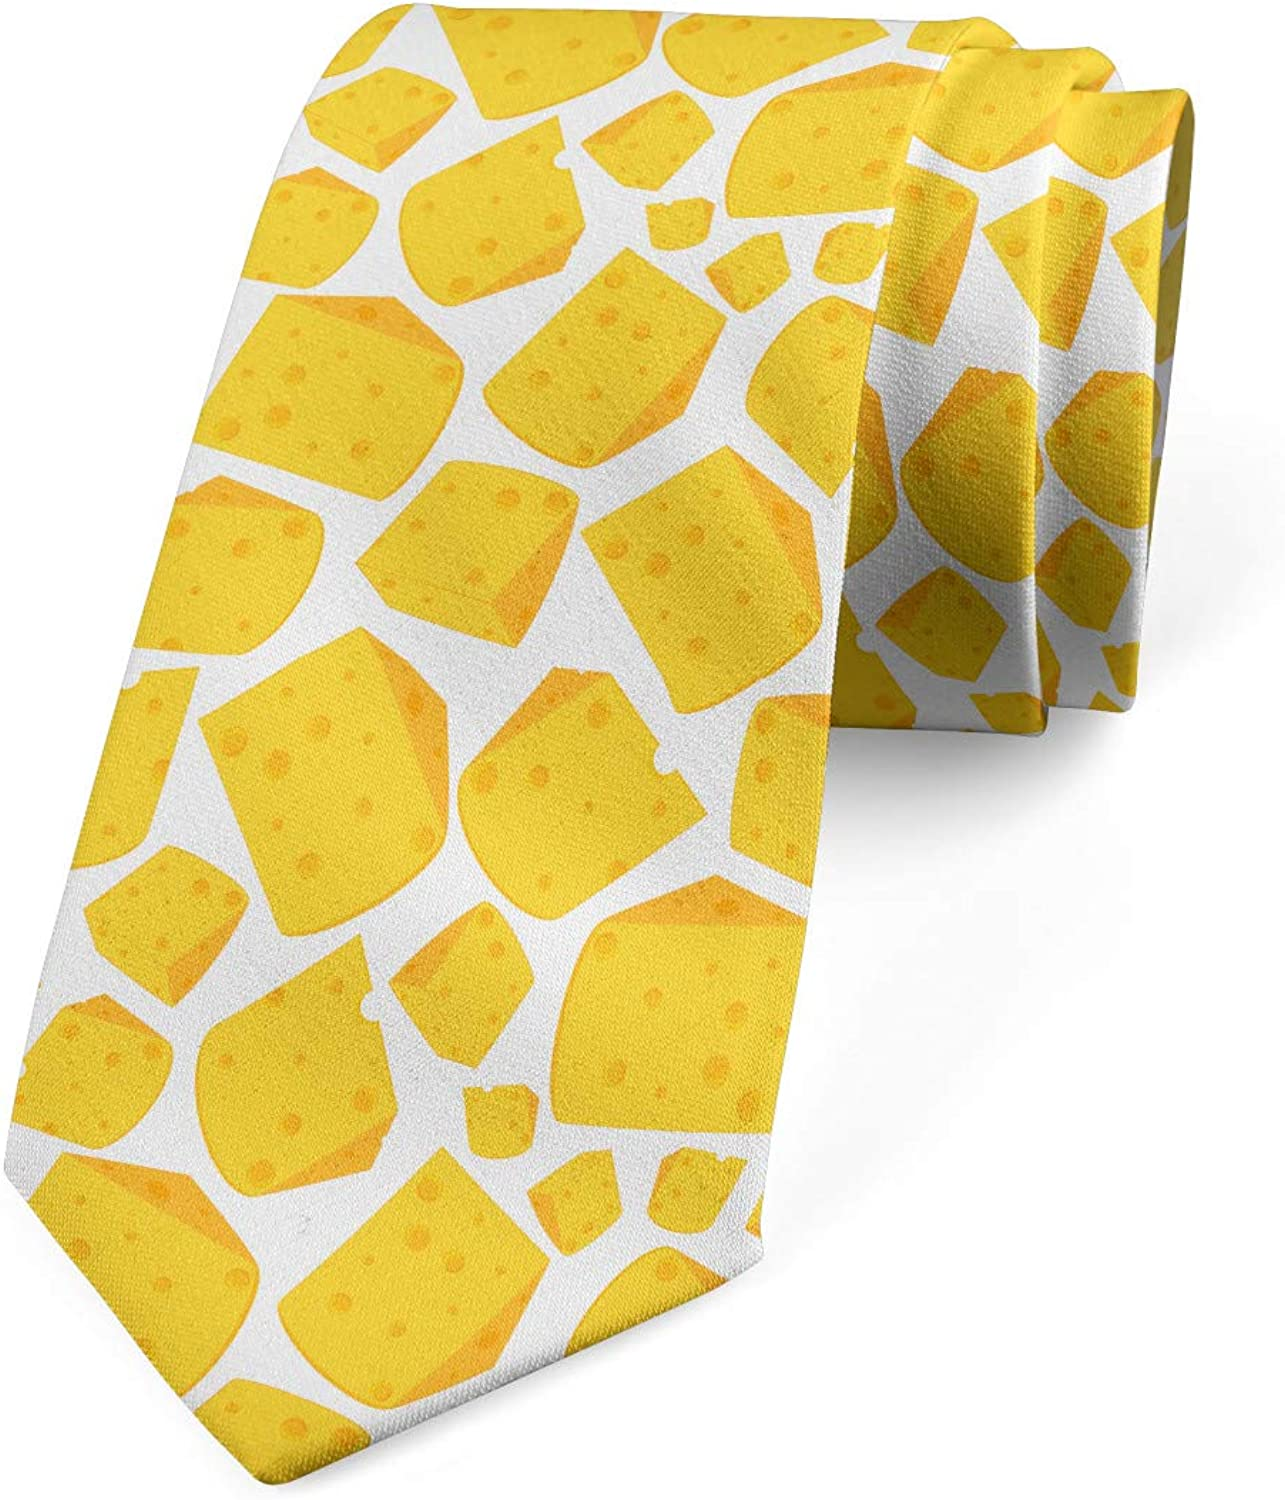 Lunarable Necktie, Repetitive Cheese Slices, 3.7